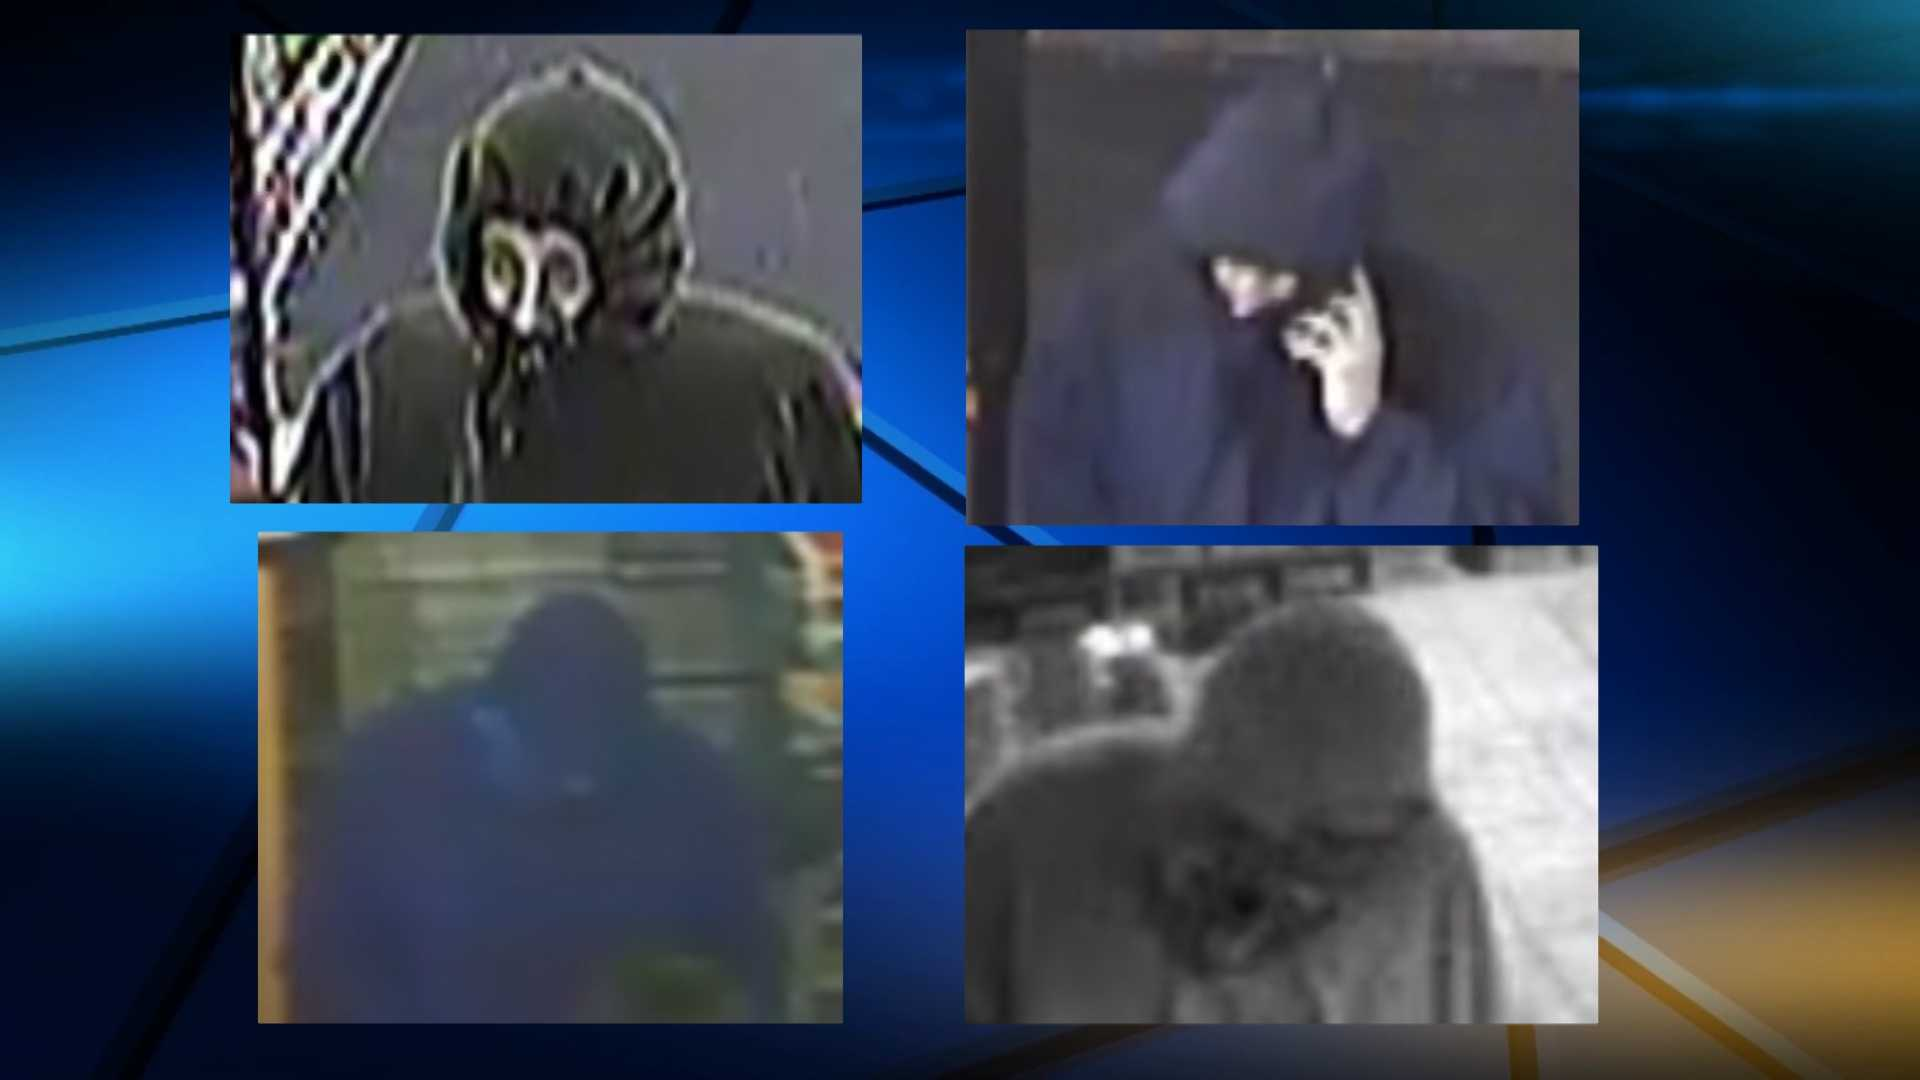 Police in central Vermont are searching for a man or men who have robbed eight convenience stores, markets or pharmacis since New Year's Eve.